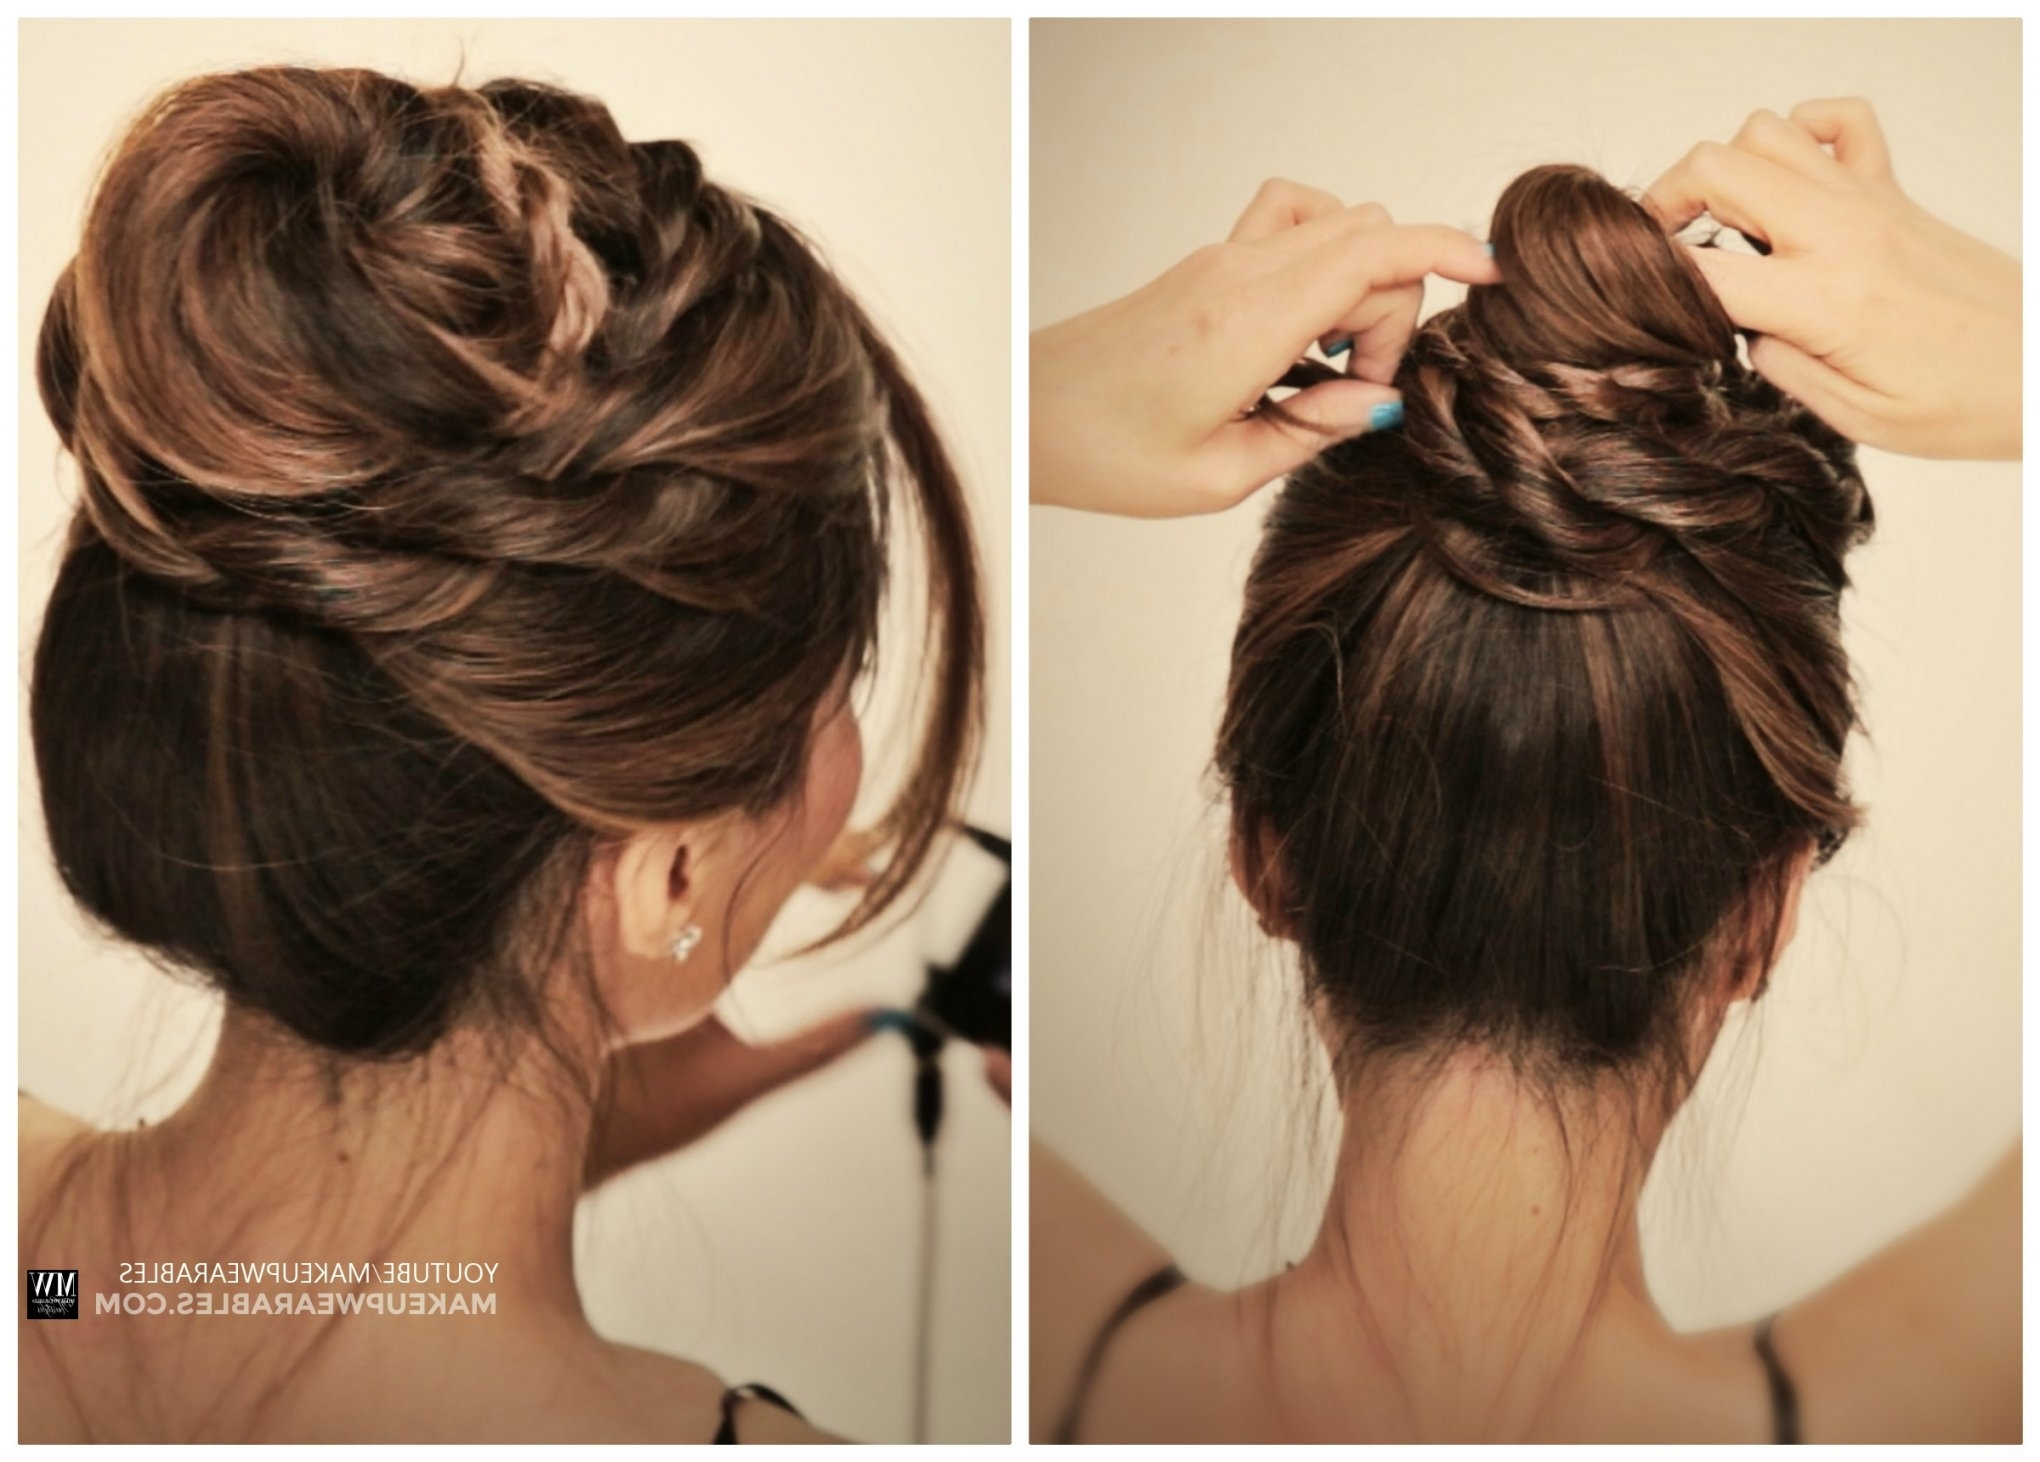 How To: 5 Amazingly Cute + Easy Hairstyles With A Simple Twist Within Cute Easy Updo Hairstyles (View 10 of 15)